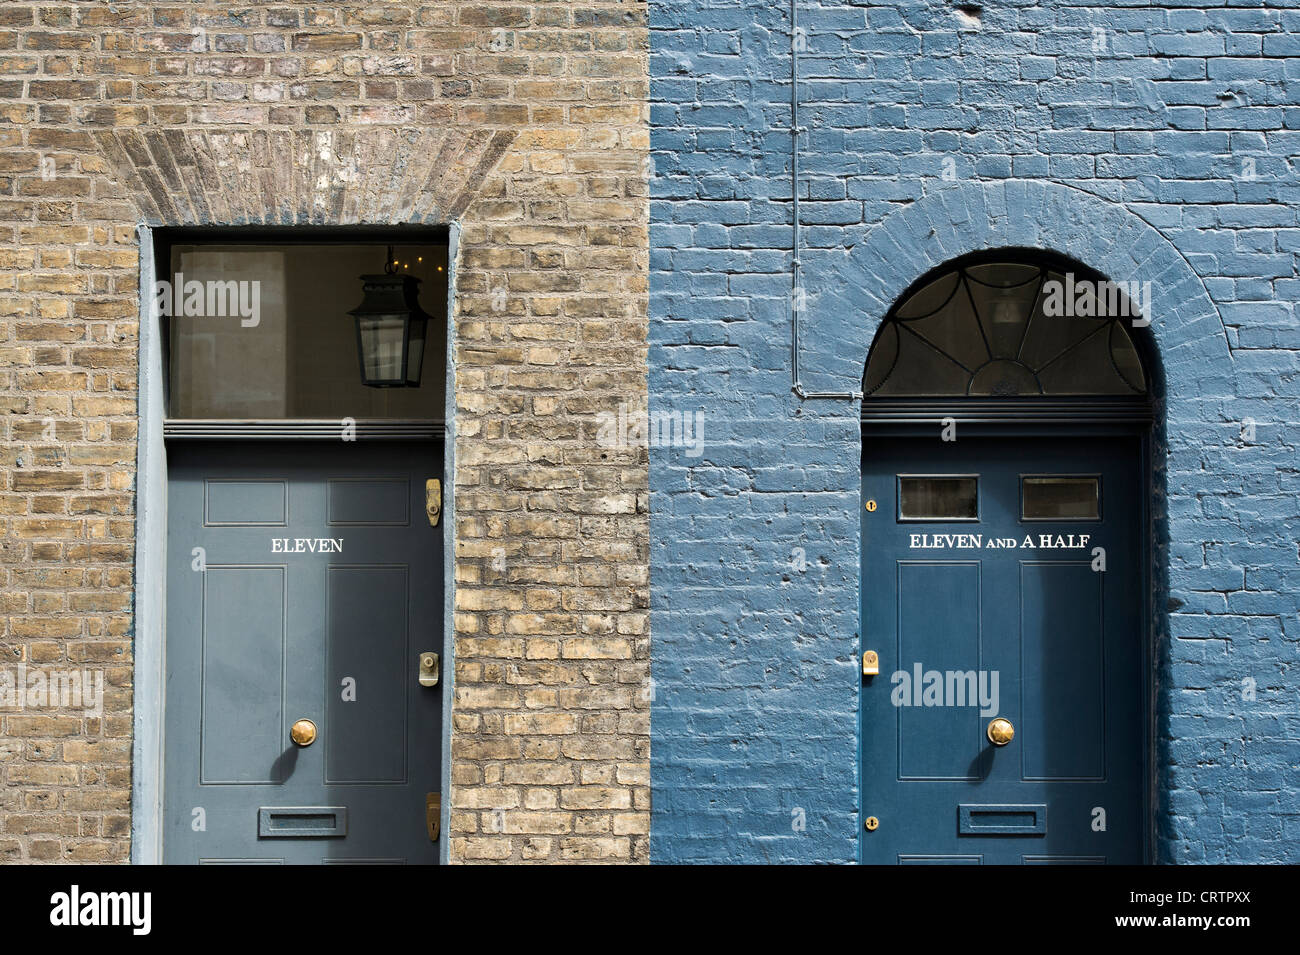 Eleven and Eleven and a Half front doors, Victorian terraced ...